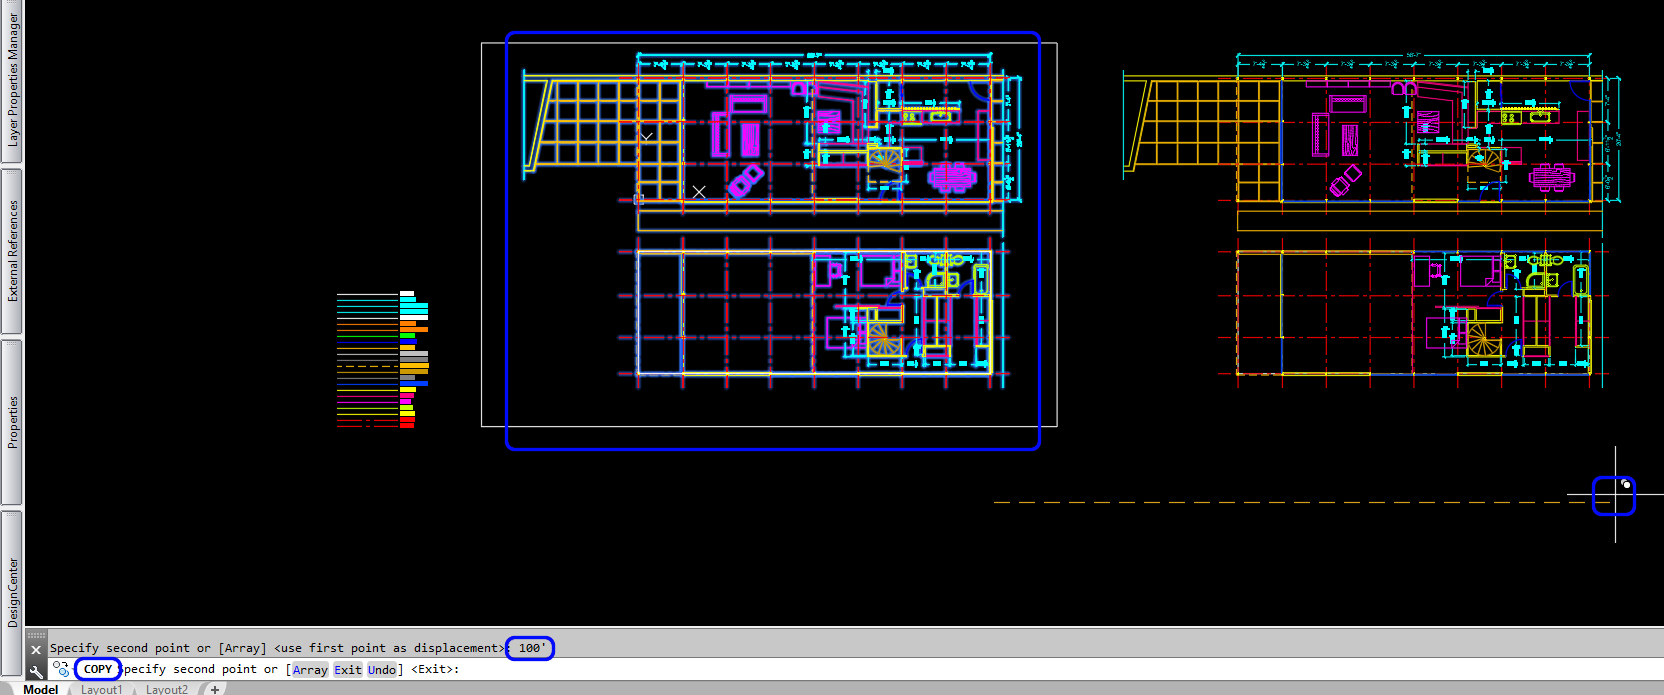 It shows the process image copying floor plans for a section drawing.